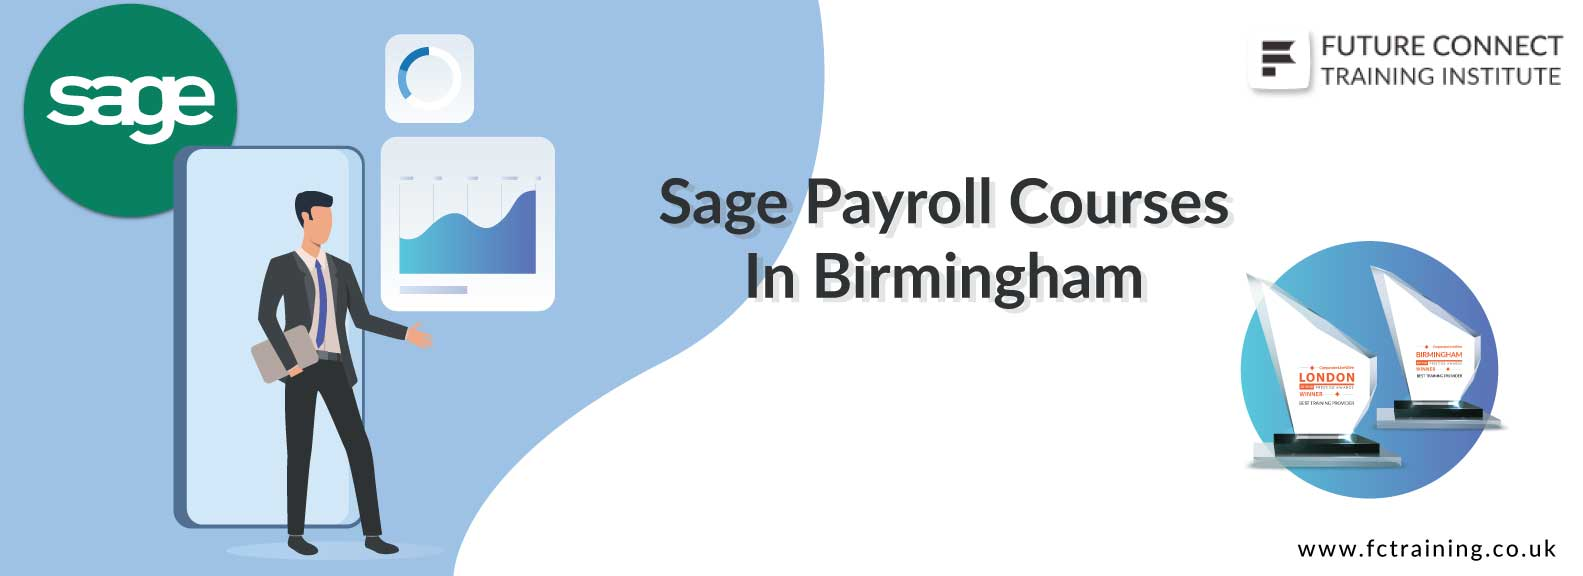 Sage Payroll Courses In Birmingham